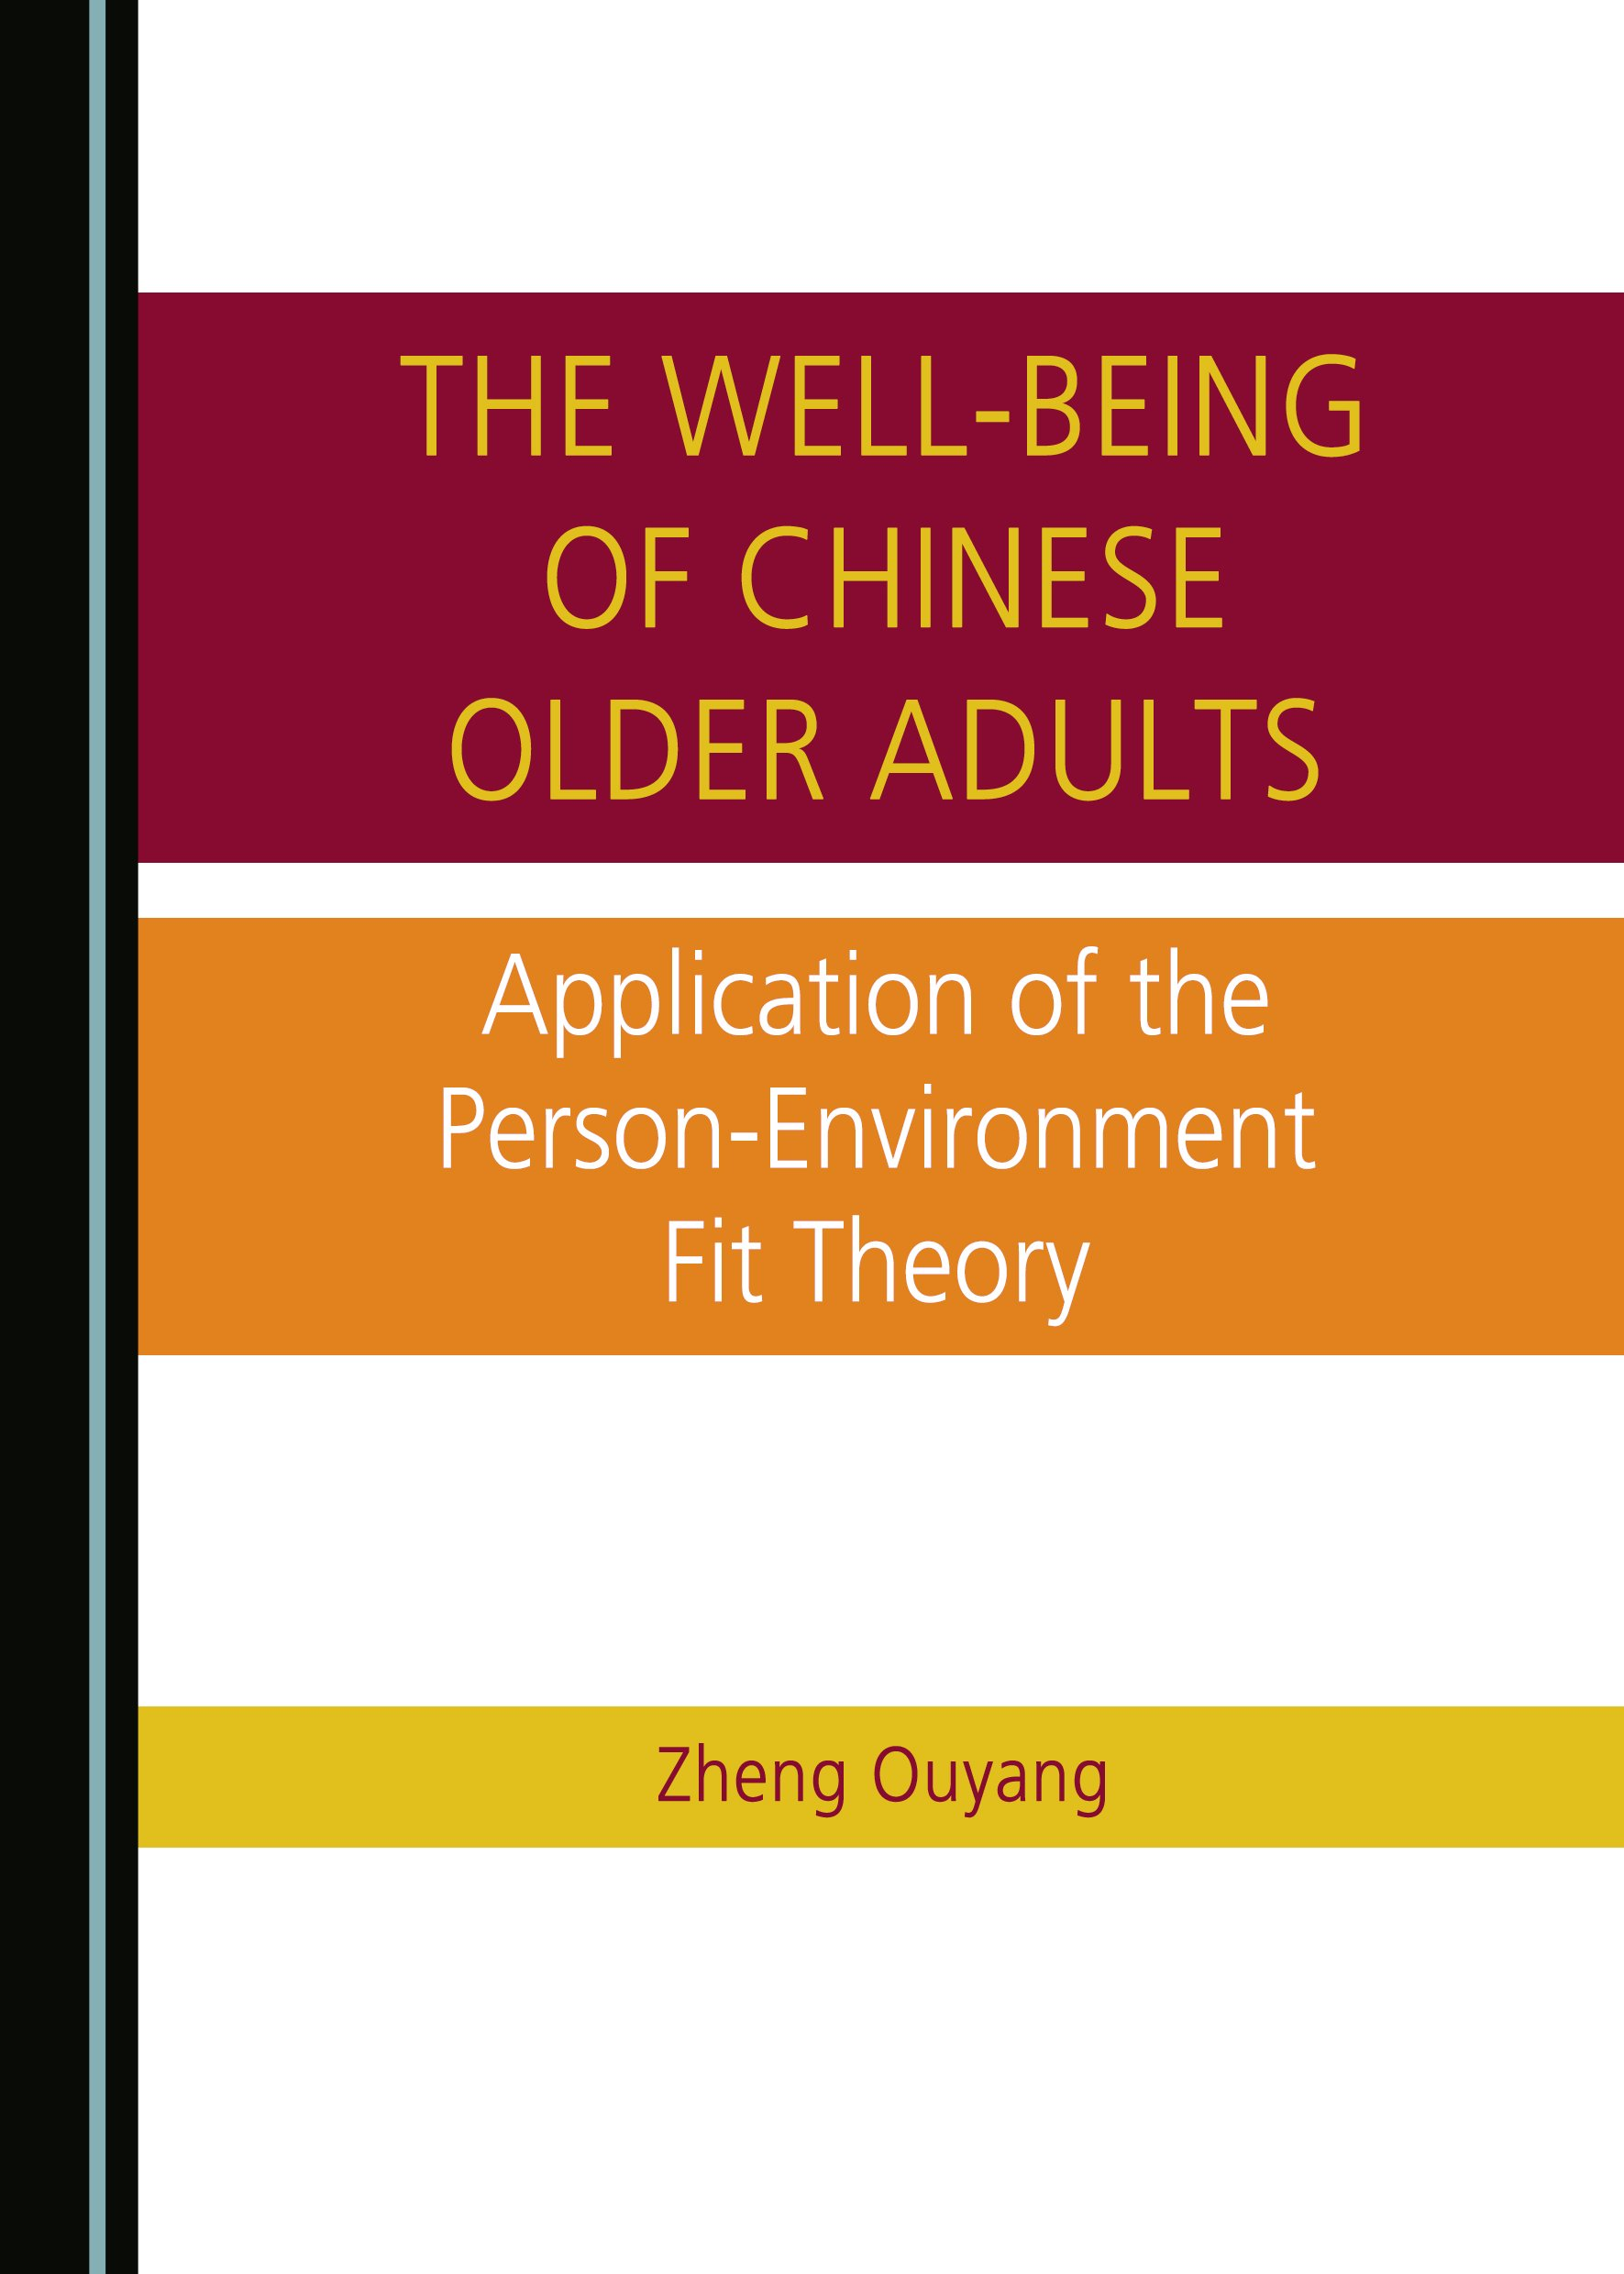 The Well-being of Chinese Older Adults: Application of the Person-Environment Fit Theory